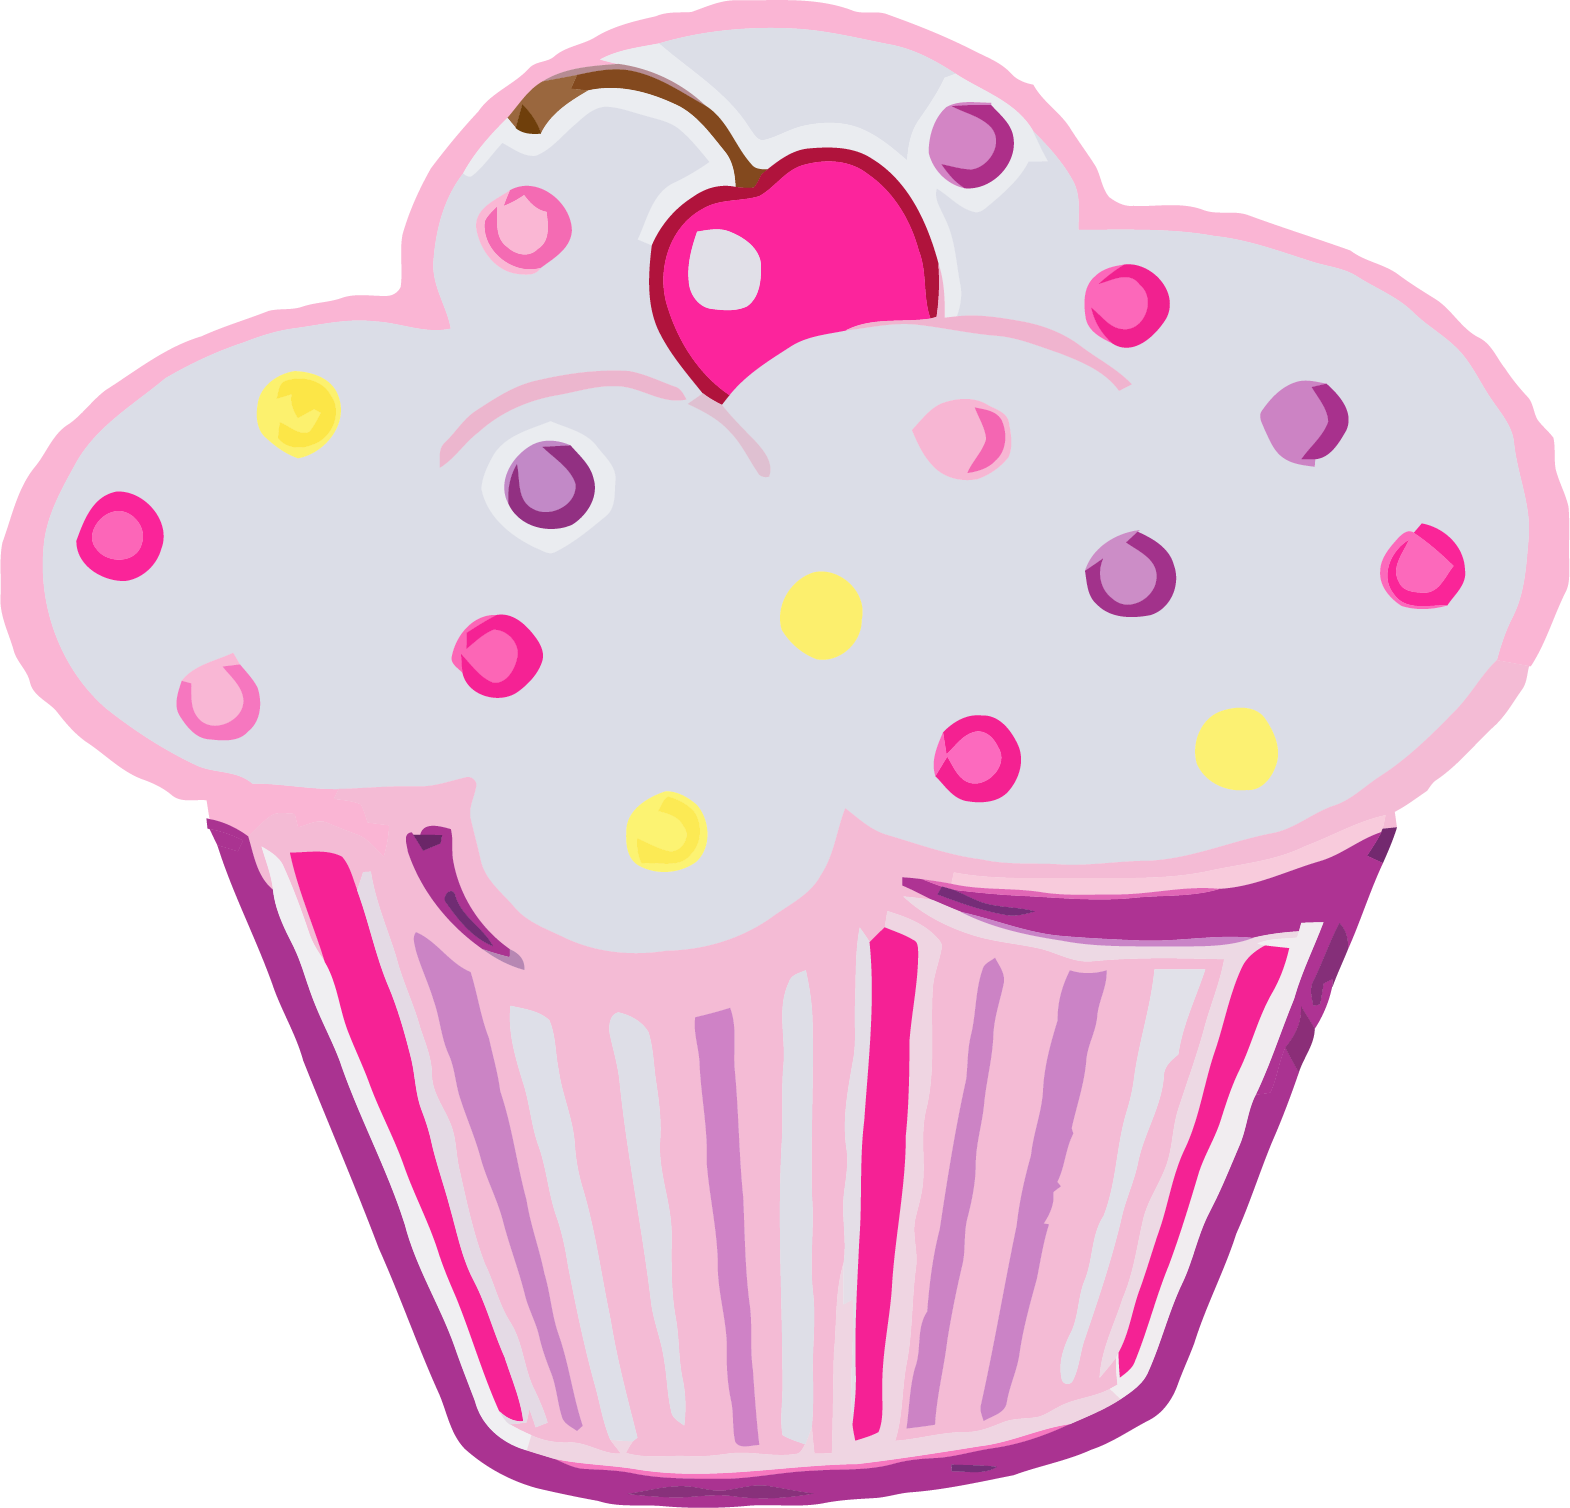 Heart cupcake clipart png free Cupcake Clipart Png | jokingart.com Cupcake Clipart png free